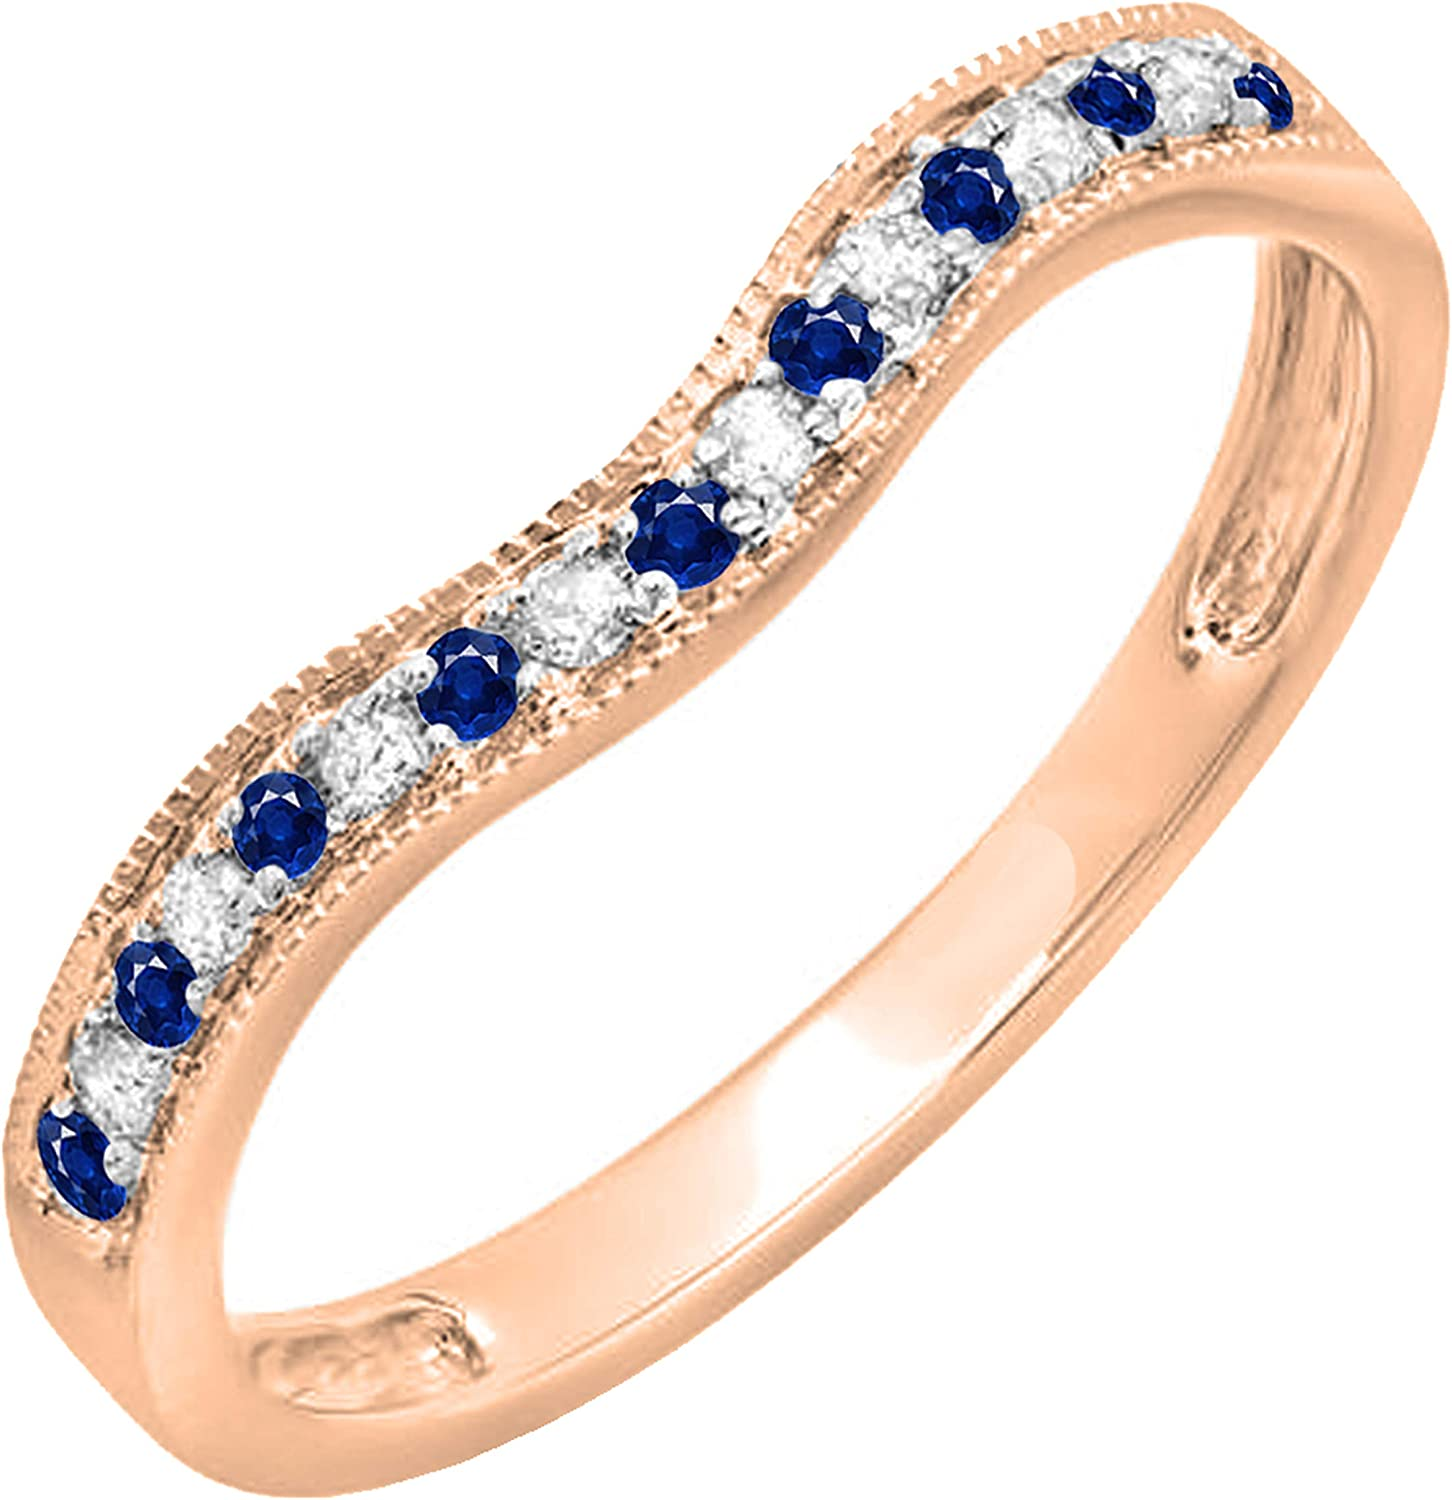 Dazzlingrock Collection Round Blue Sapphire and White Diamond Ladies Contour Guard Wedding Band, Available in 14K/10K/18K Gold